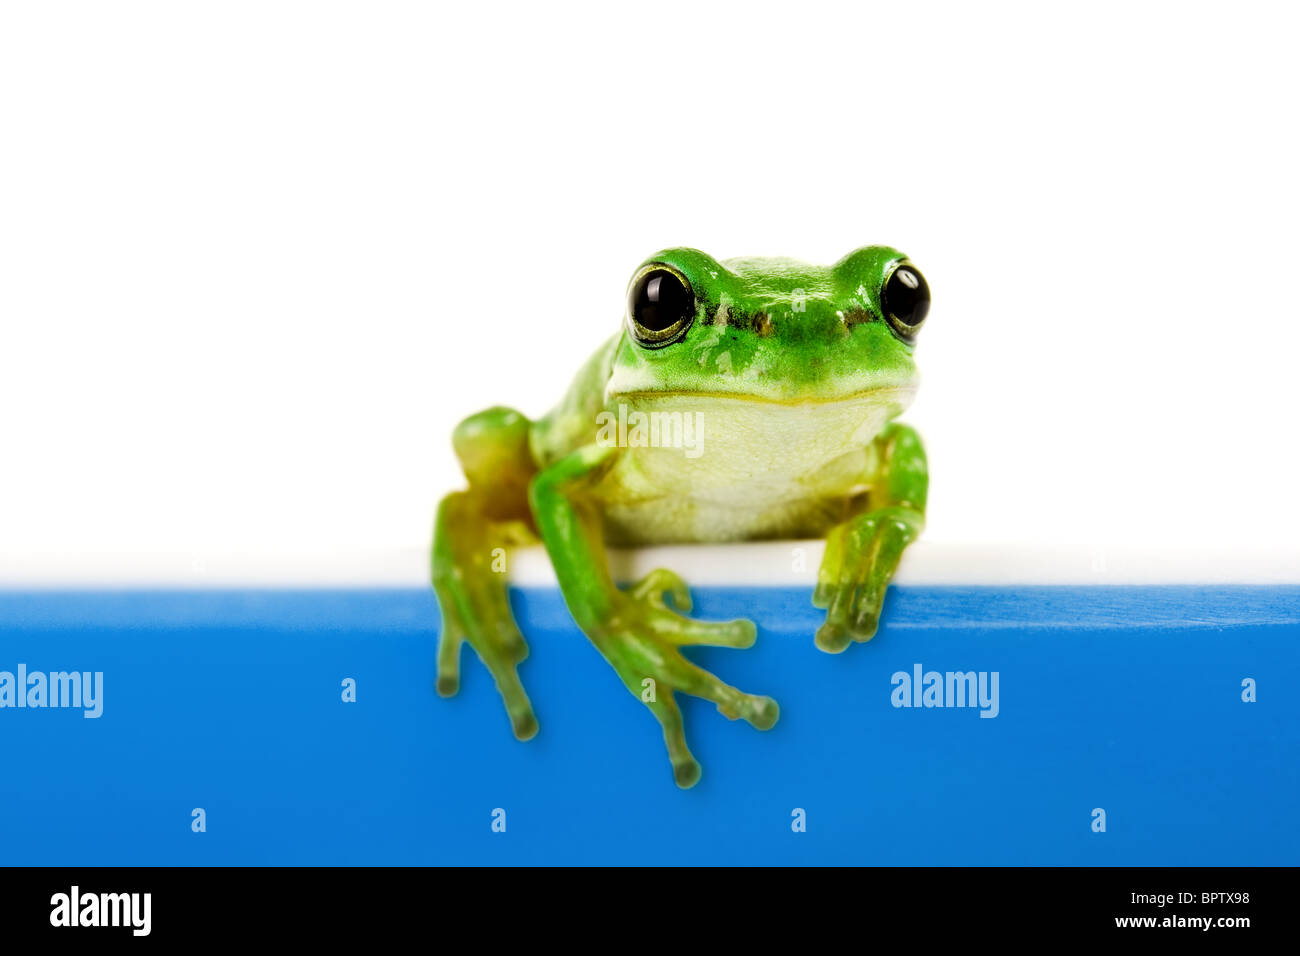 Green frog looking out of blue cooking pot Stock Photo